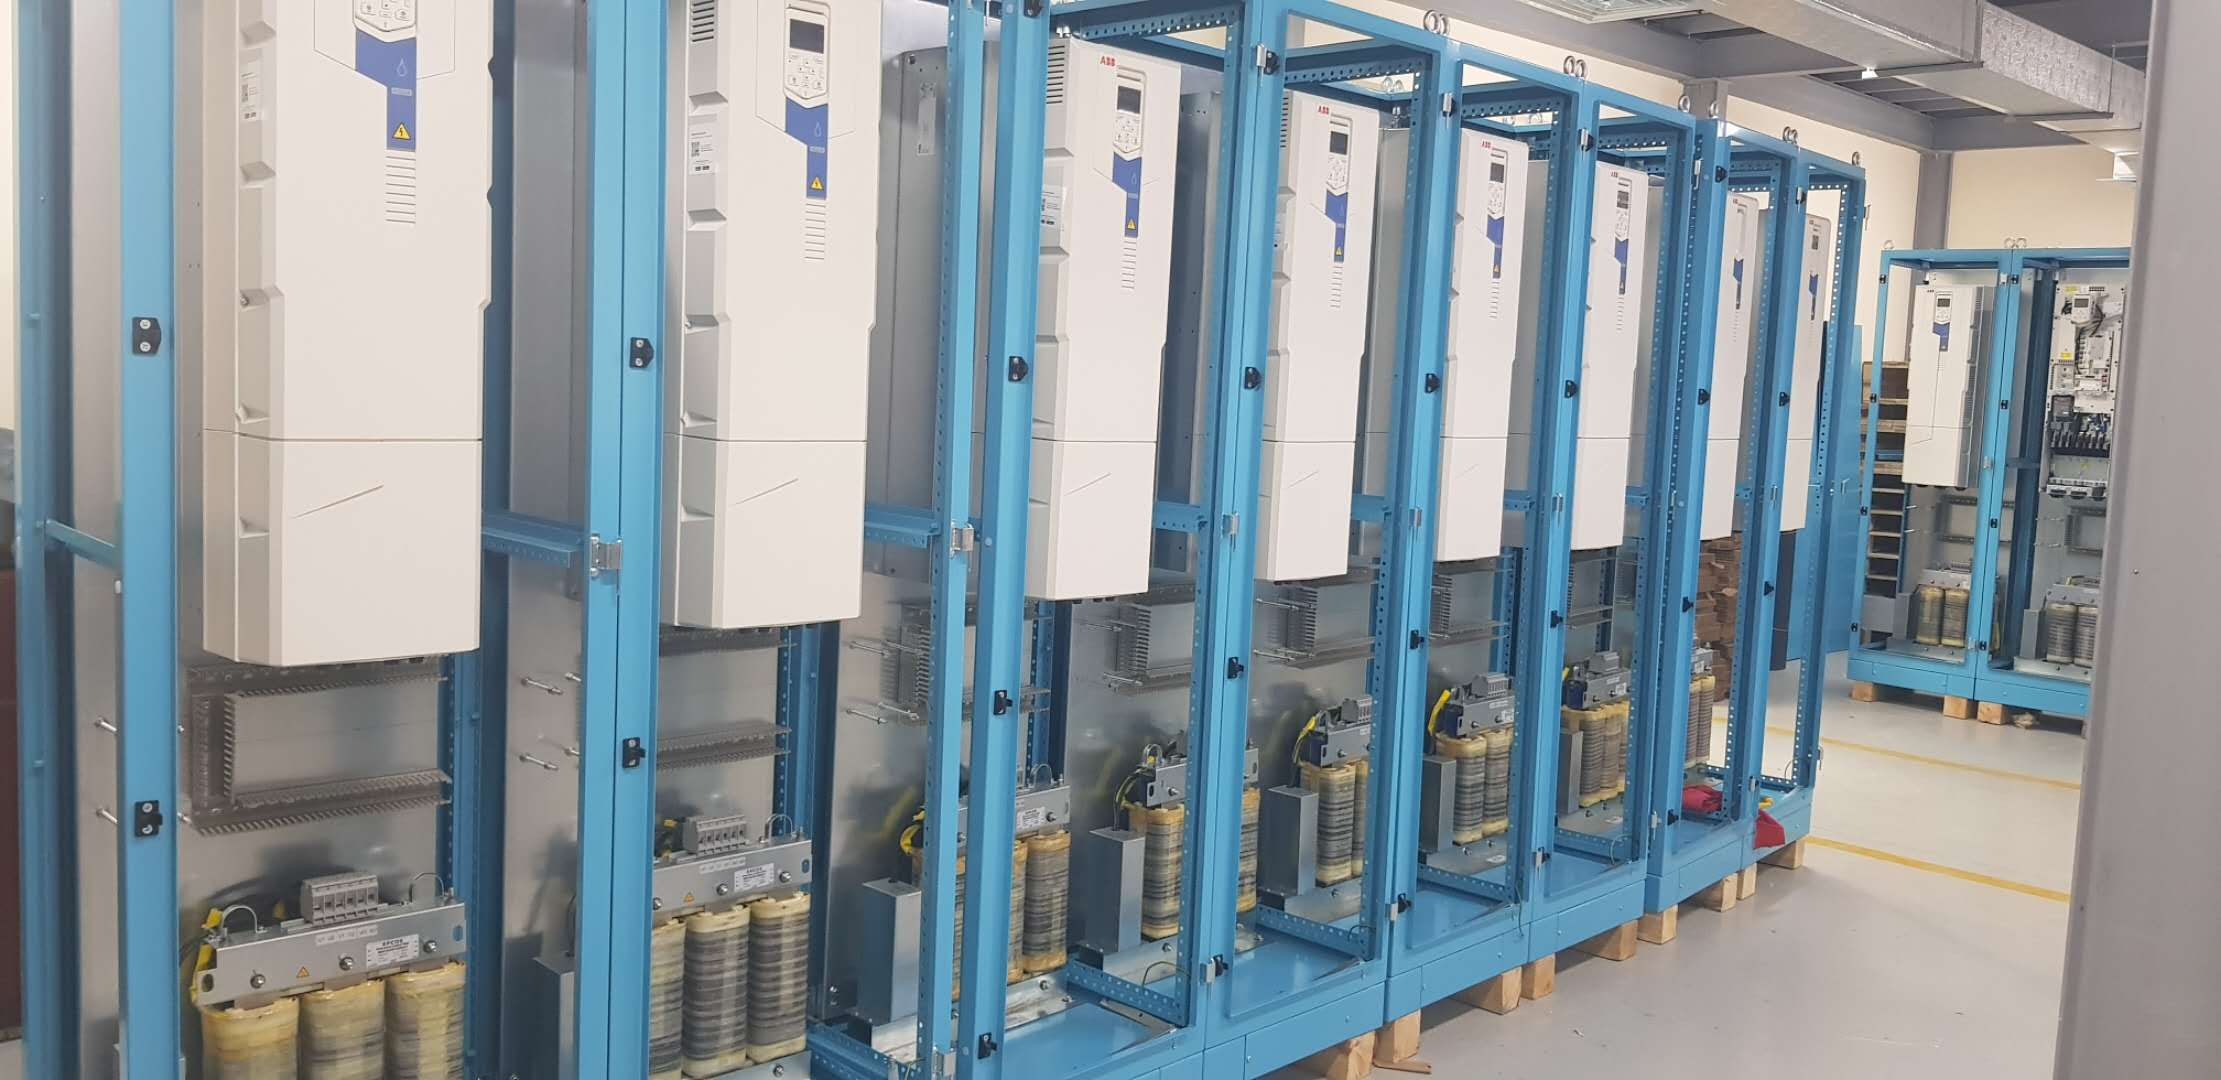 Electrical Cabinet In 2020 Electrical Cabinet Electricity Roll Forming